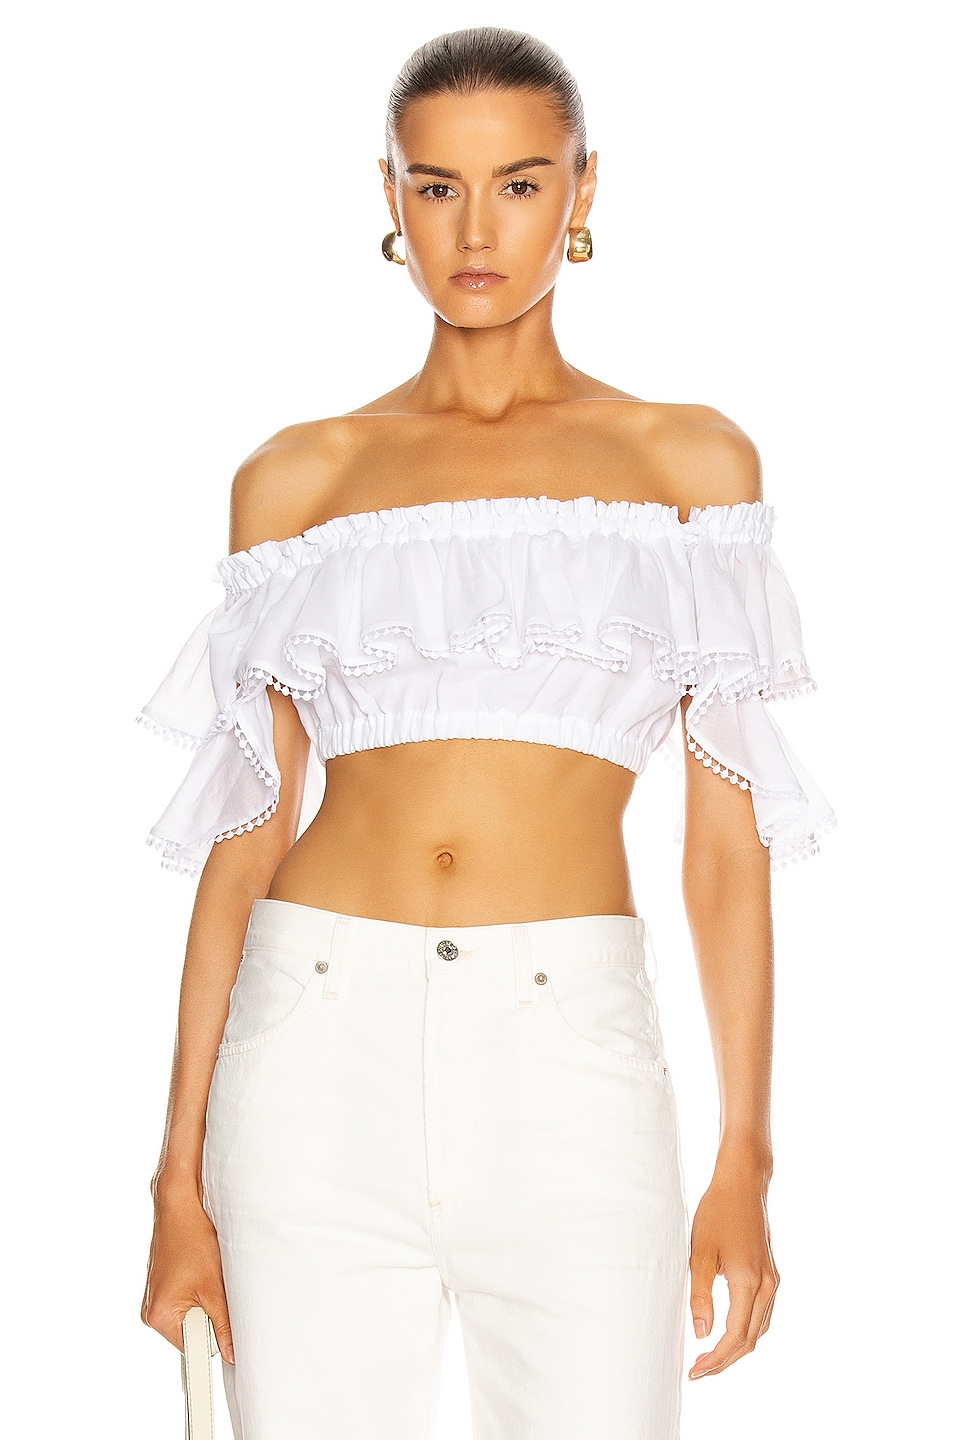 Image 1 of Charo Ruiz Ibiza Cata Top in White